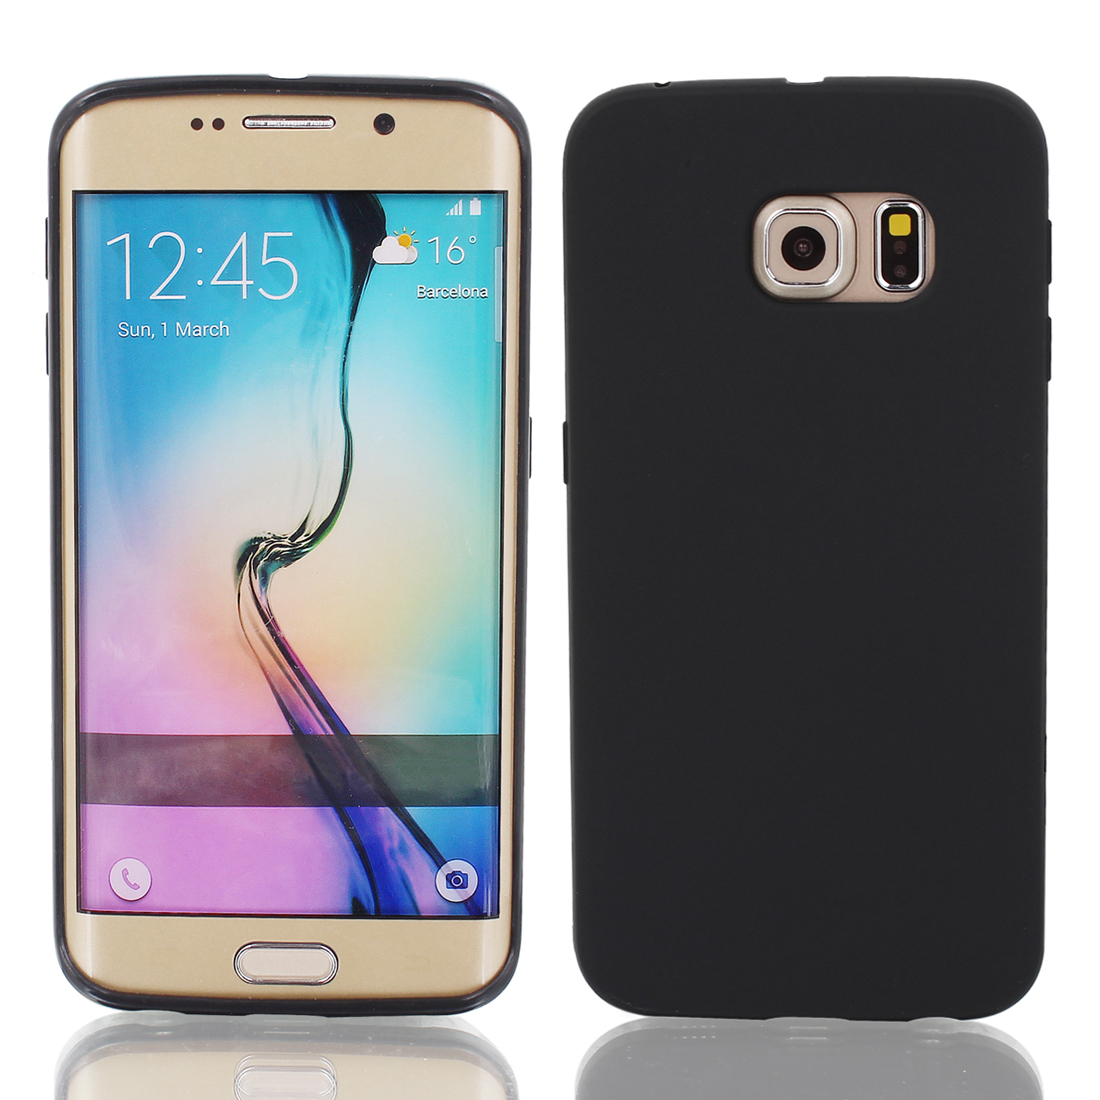 Black Back Case Cover Protector w Protective Film Wiper for S6/G925